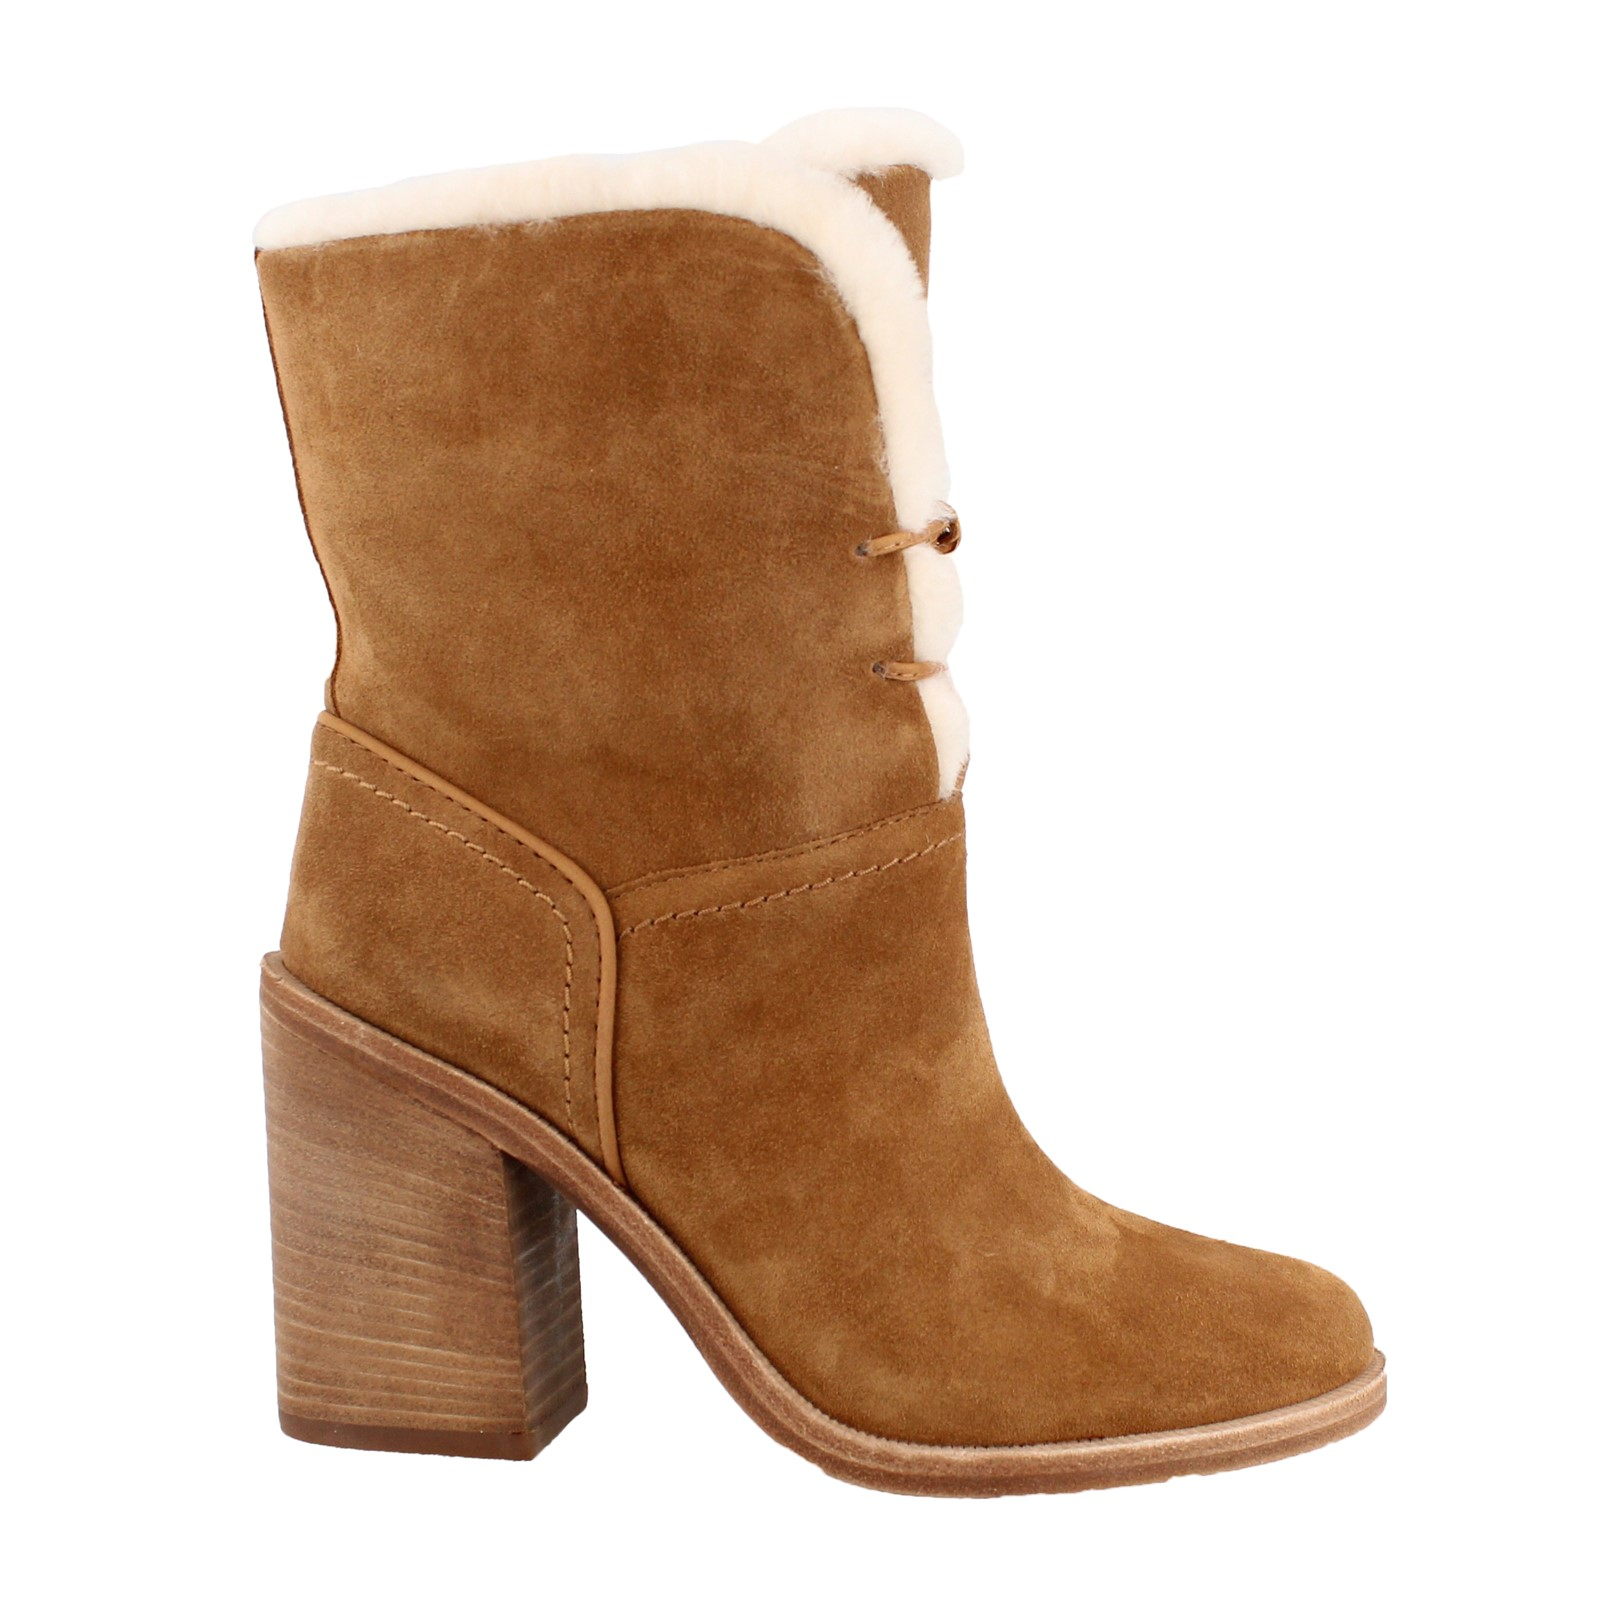 Women's Ugg, Jerene Ankle Boots